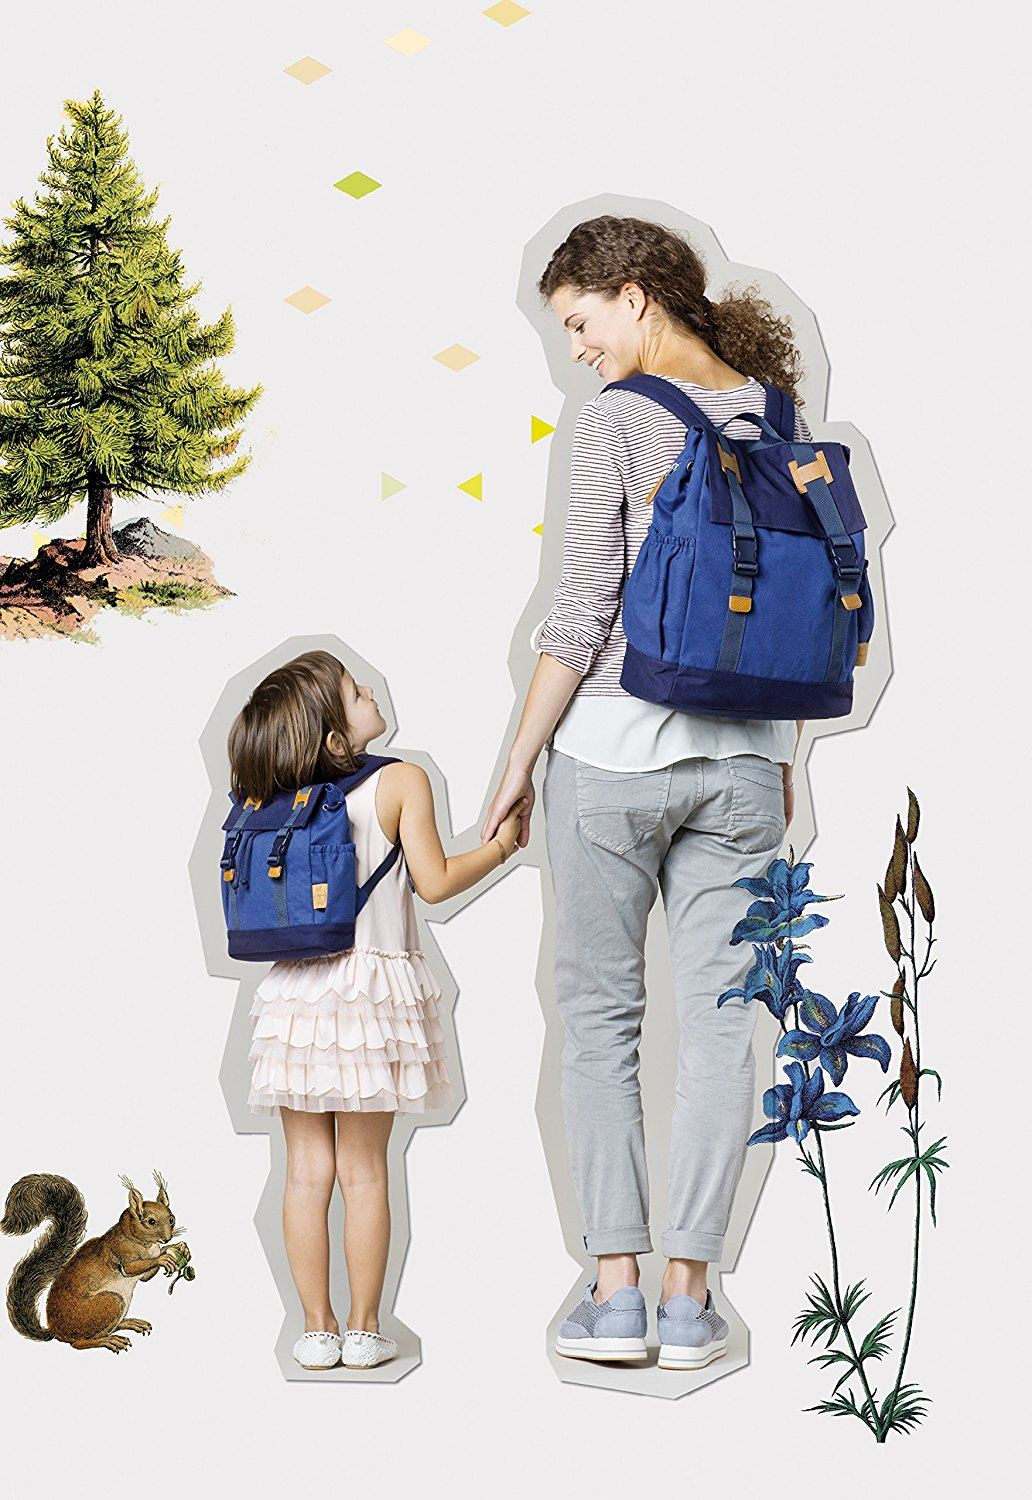 Lässig Vintage Little One und Me Backpack, klein Kinderrucksack Kindergartentasche, blue